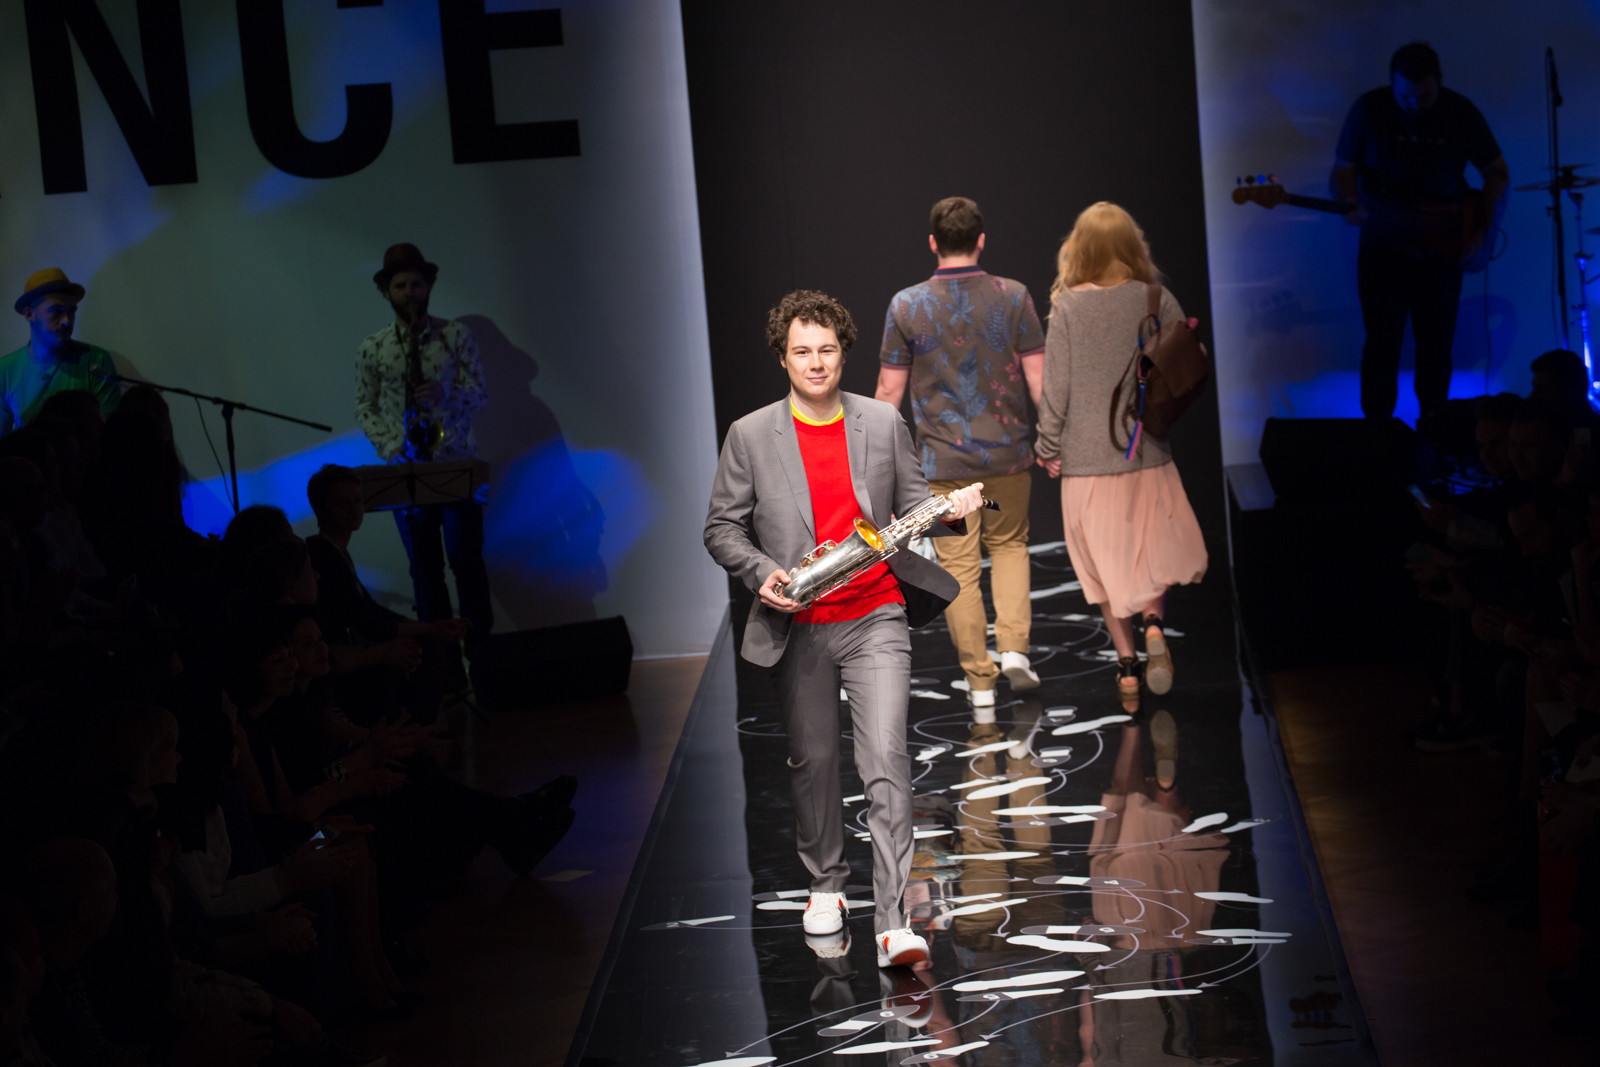 BOSCOSFASHIONWEEK: Paul Smith – Why not dance?